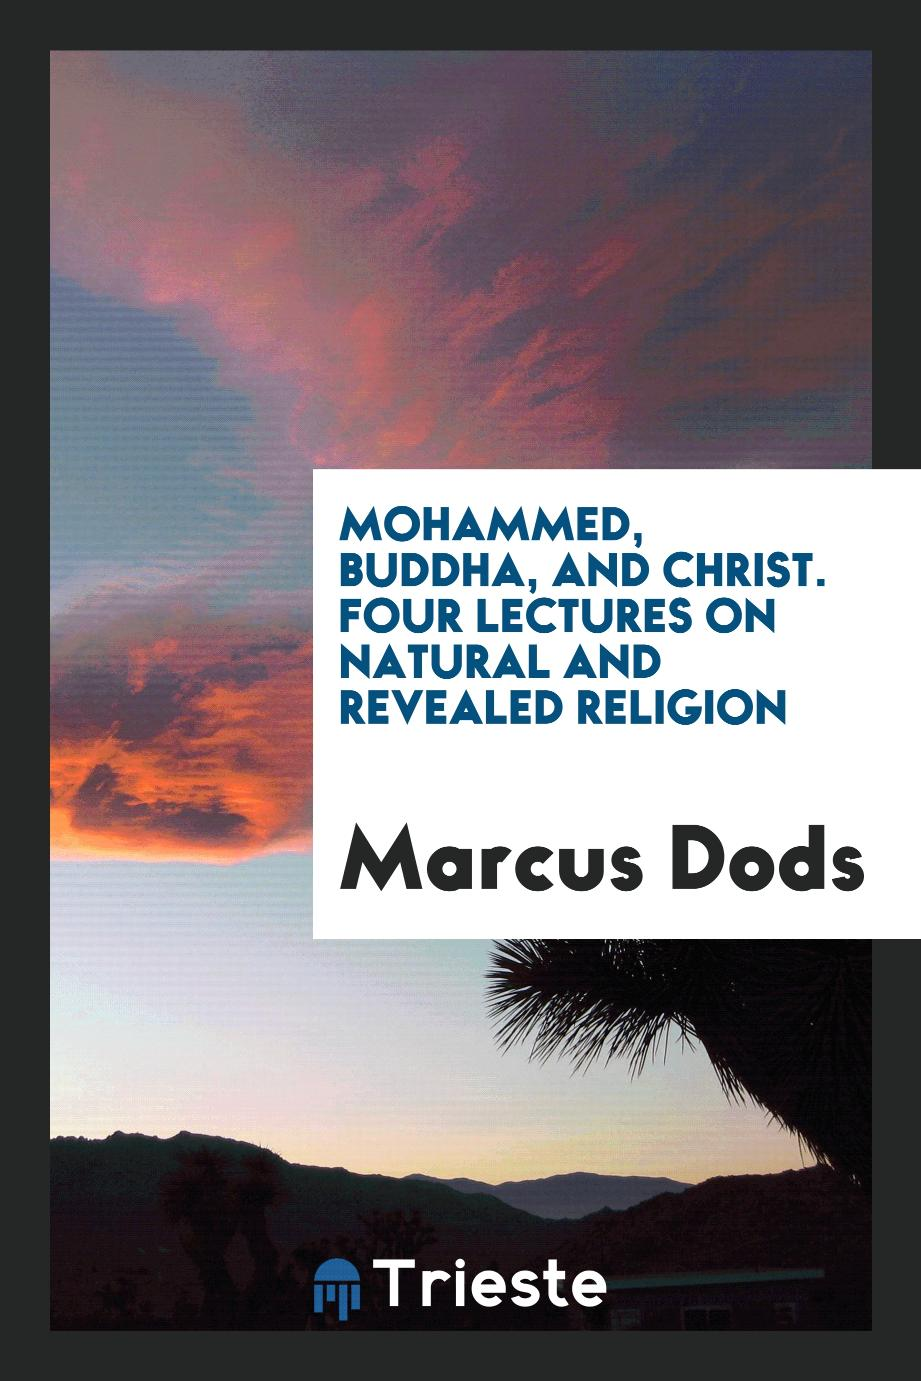 Mohammed, Buddha, and Christ. Four lectures on natural and revealed religion